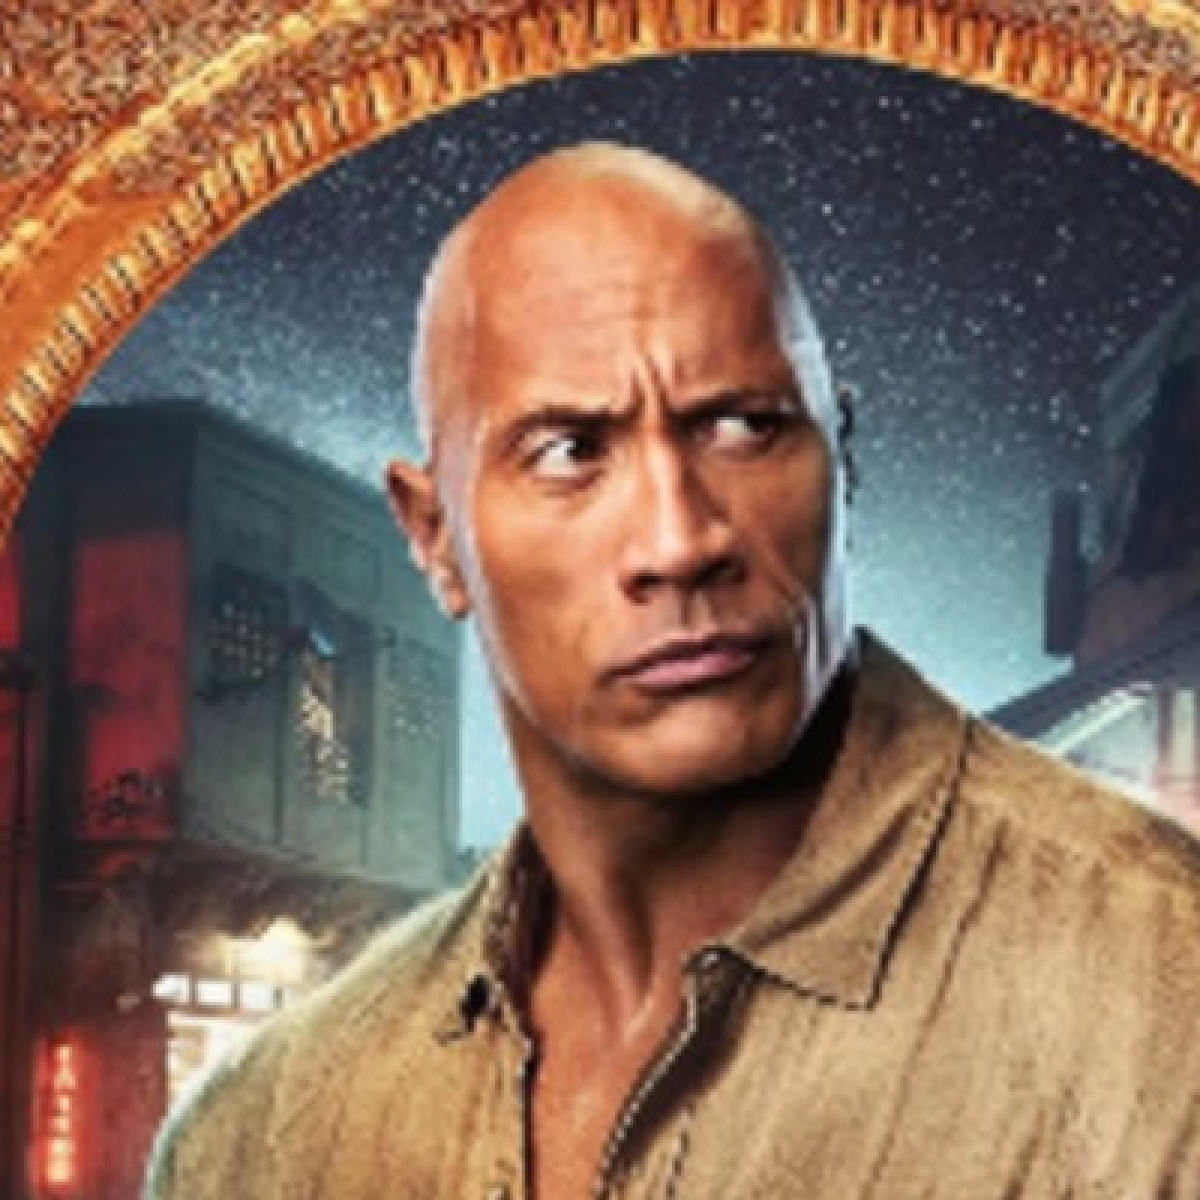 Dwayne Johnson: Good audience review may allow possibility of 'Jumanji 3'